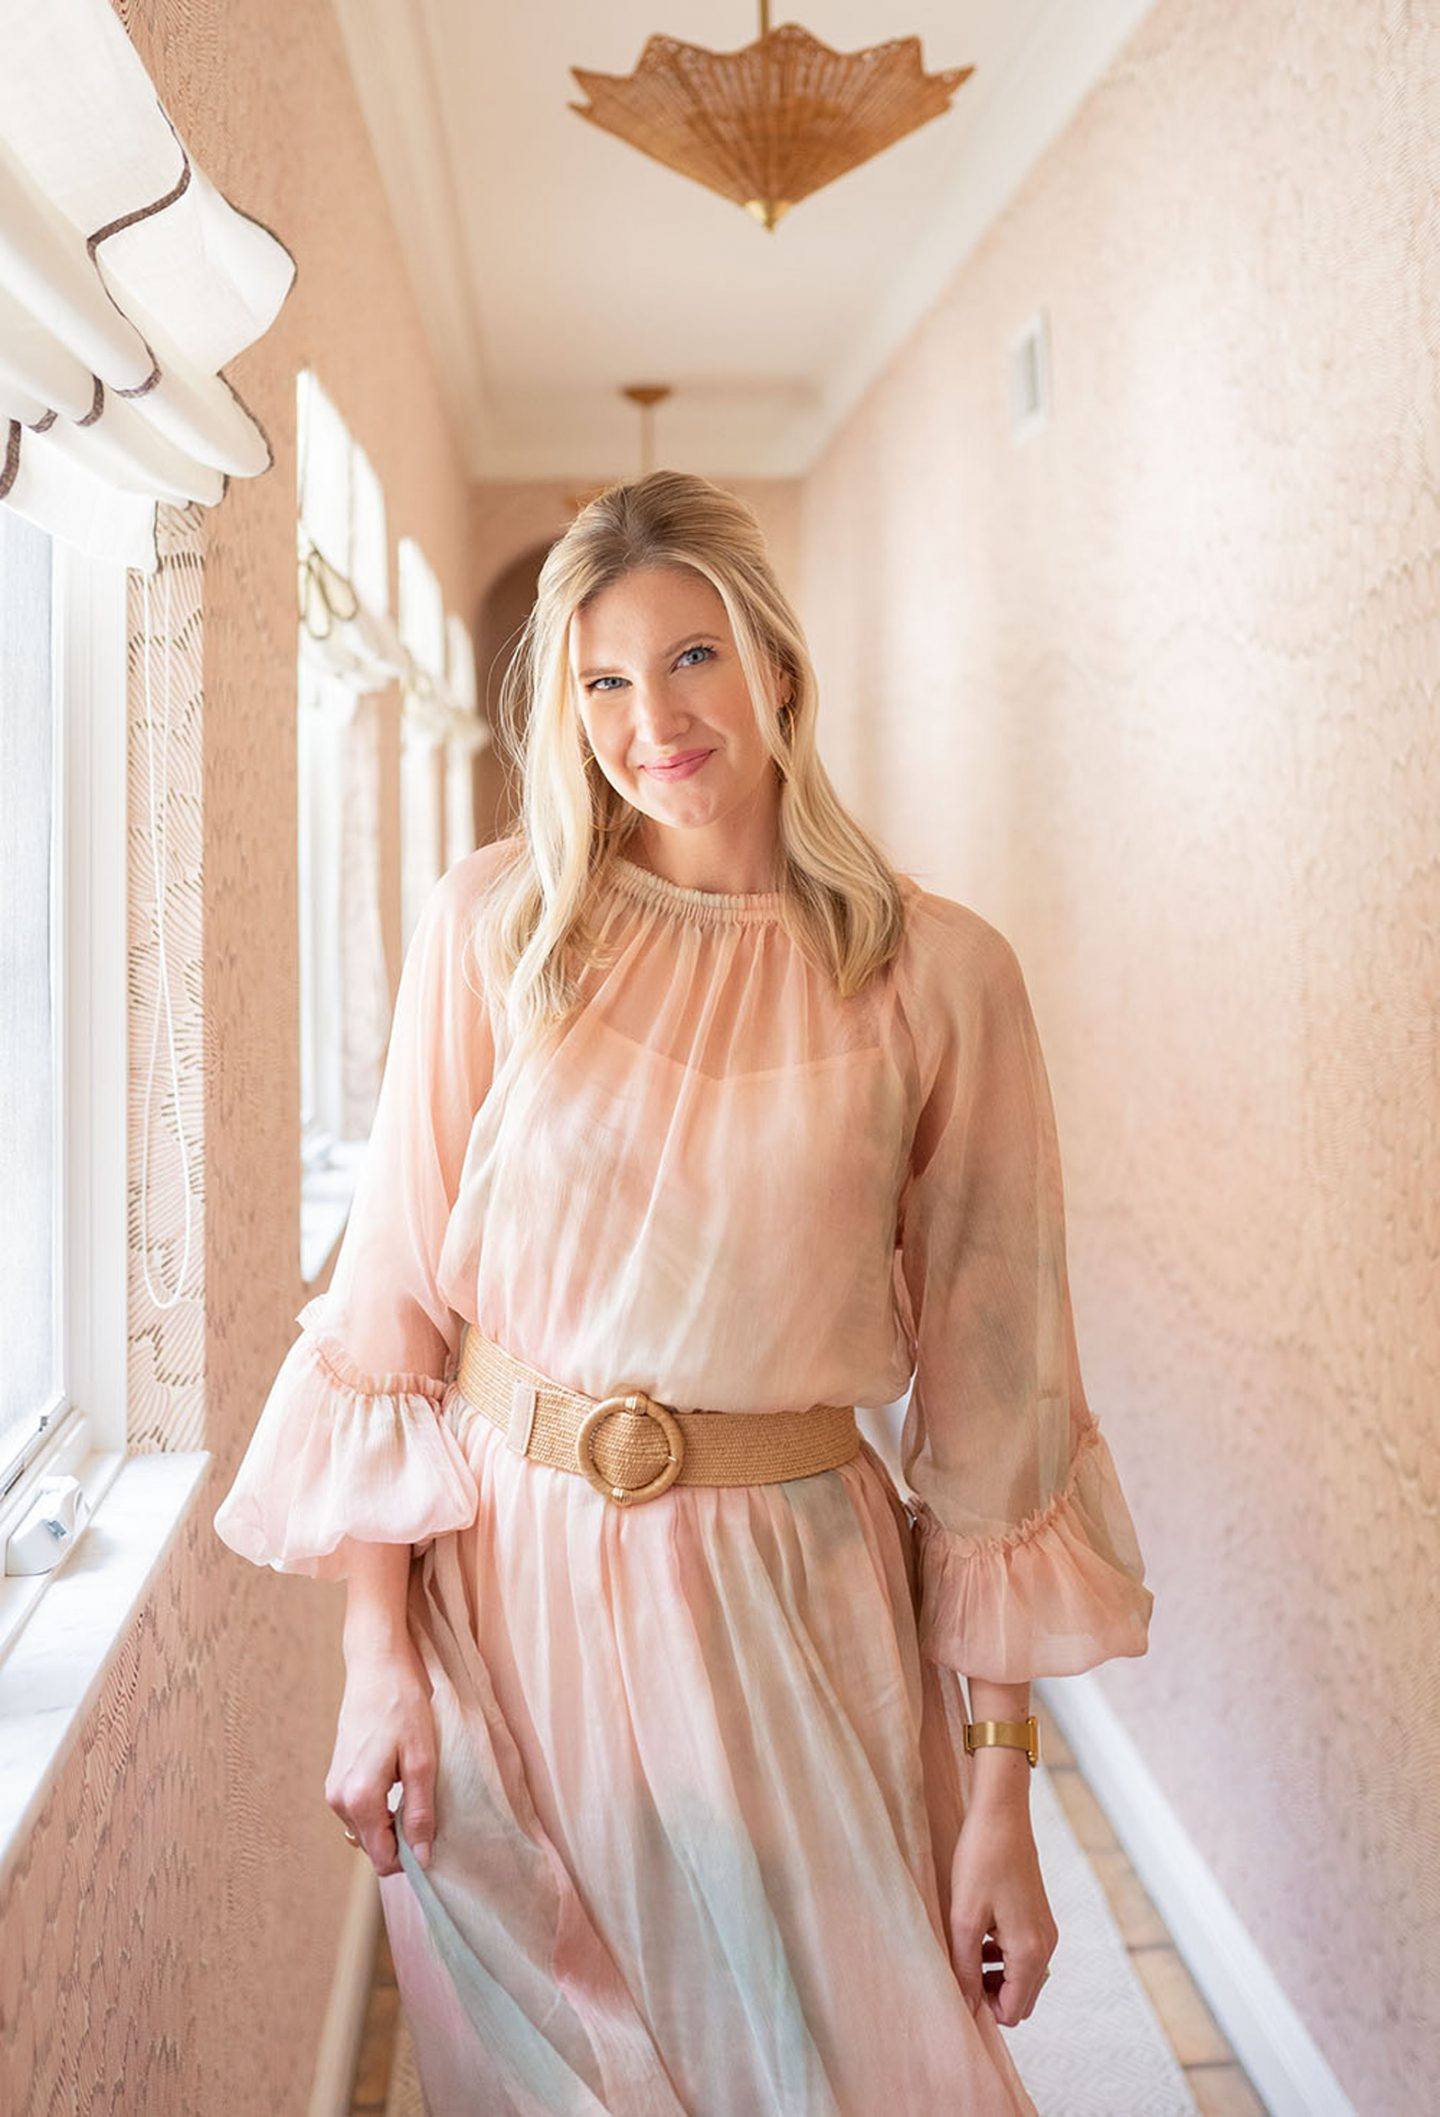 Ashley Brooke in pink hallway at The Colony Hotel in Palm Beach